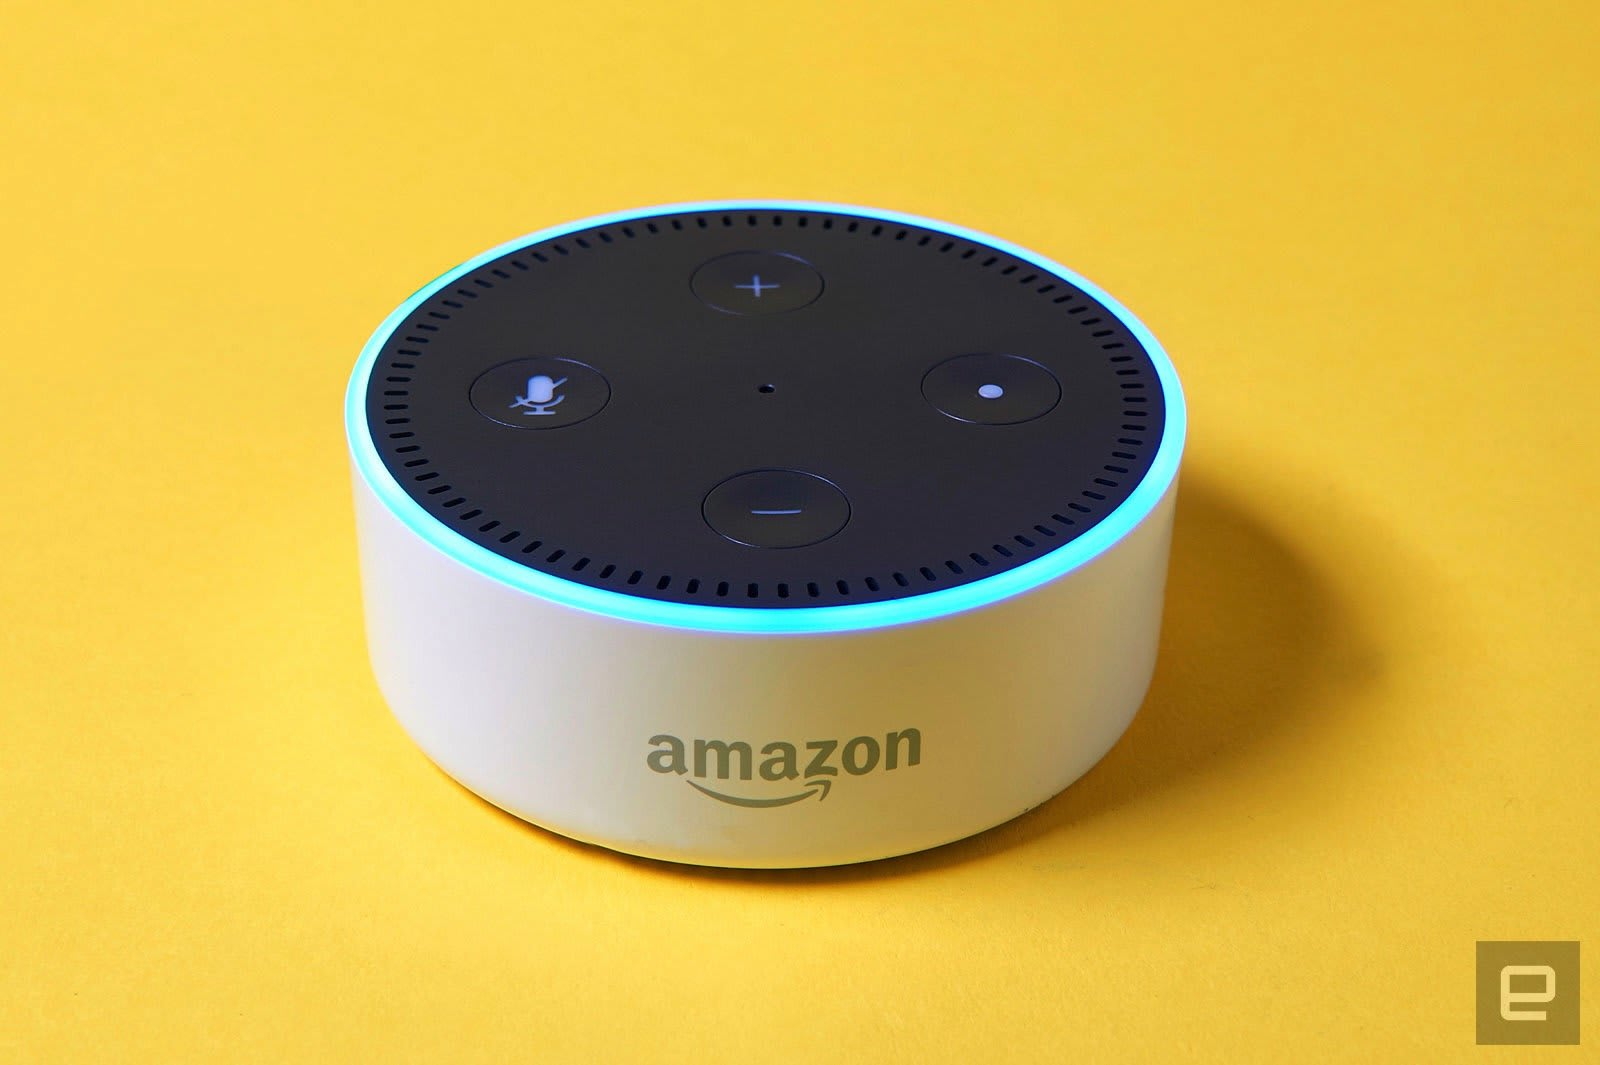 Google and Amazon approved home speaker apps that spied on users